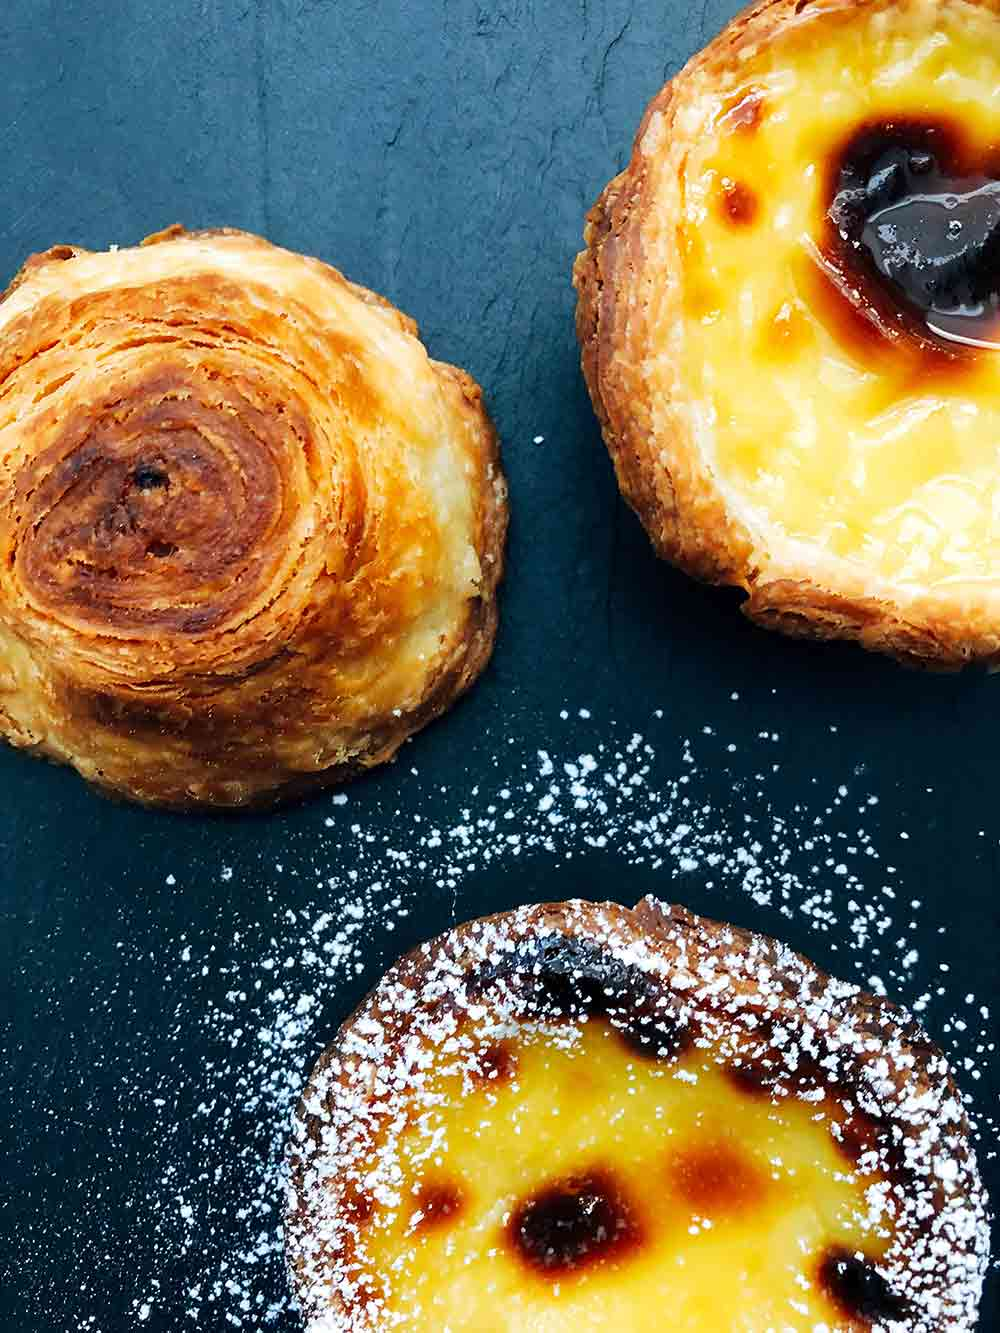 Three pasteis de nata, two face-up showing the browned spots and one upside-down, showing the delicate spiral of browned pastry